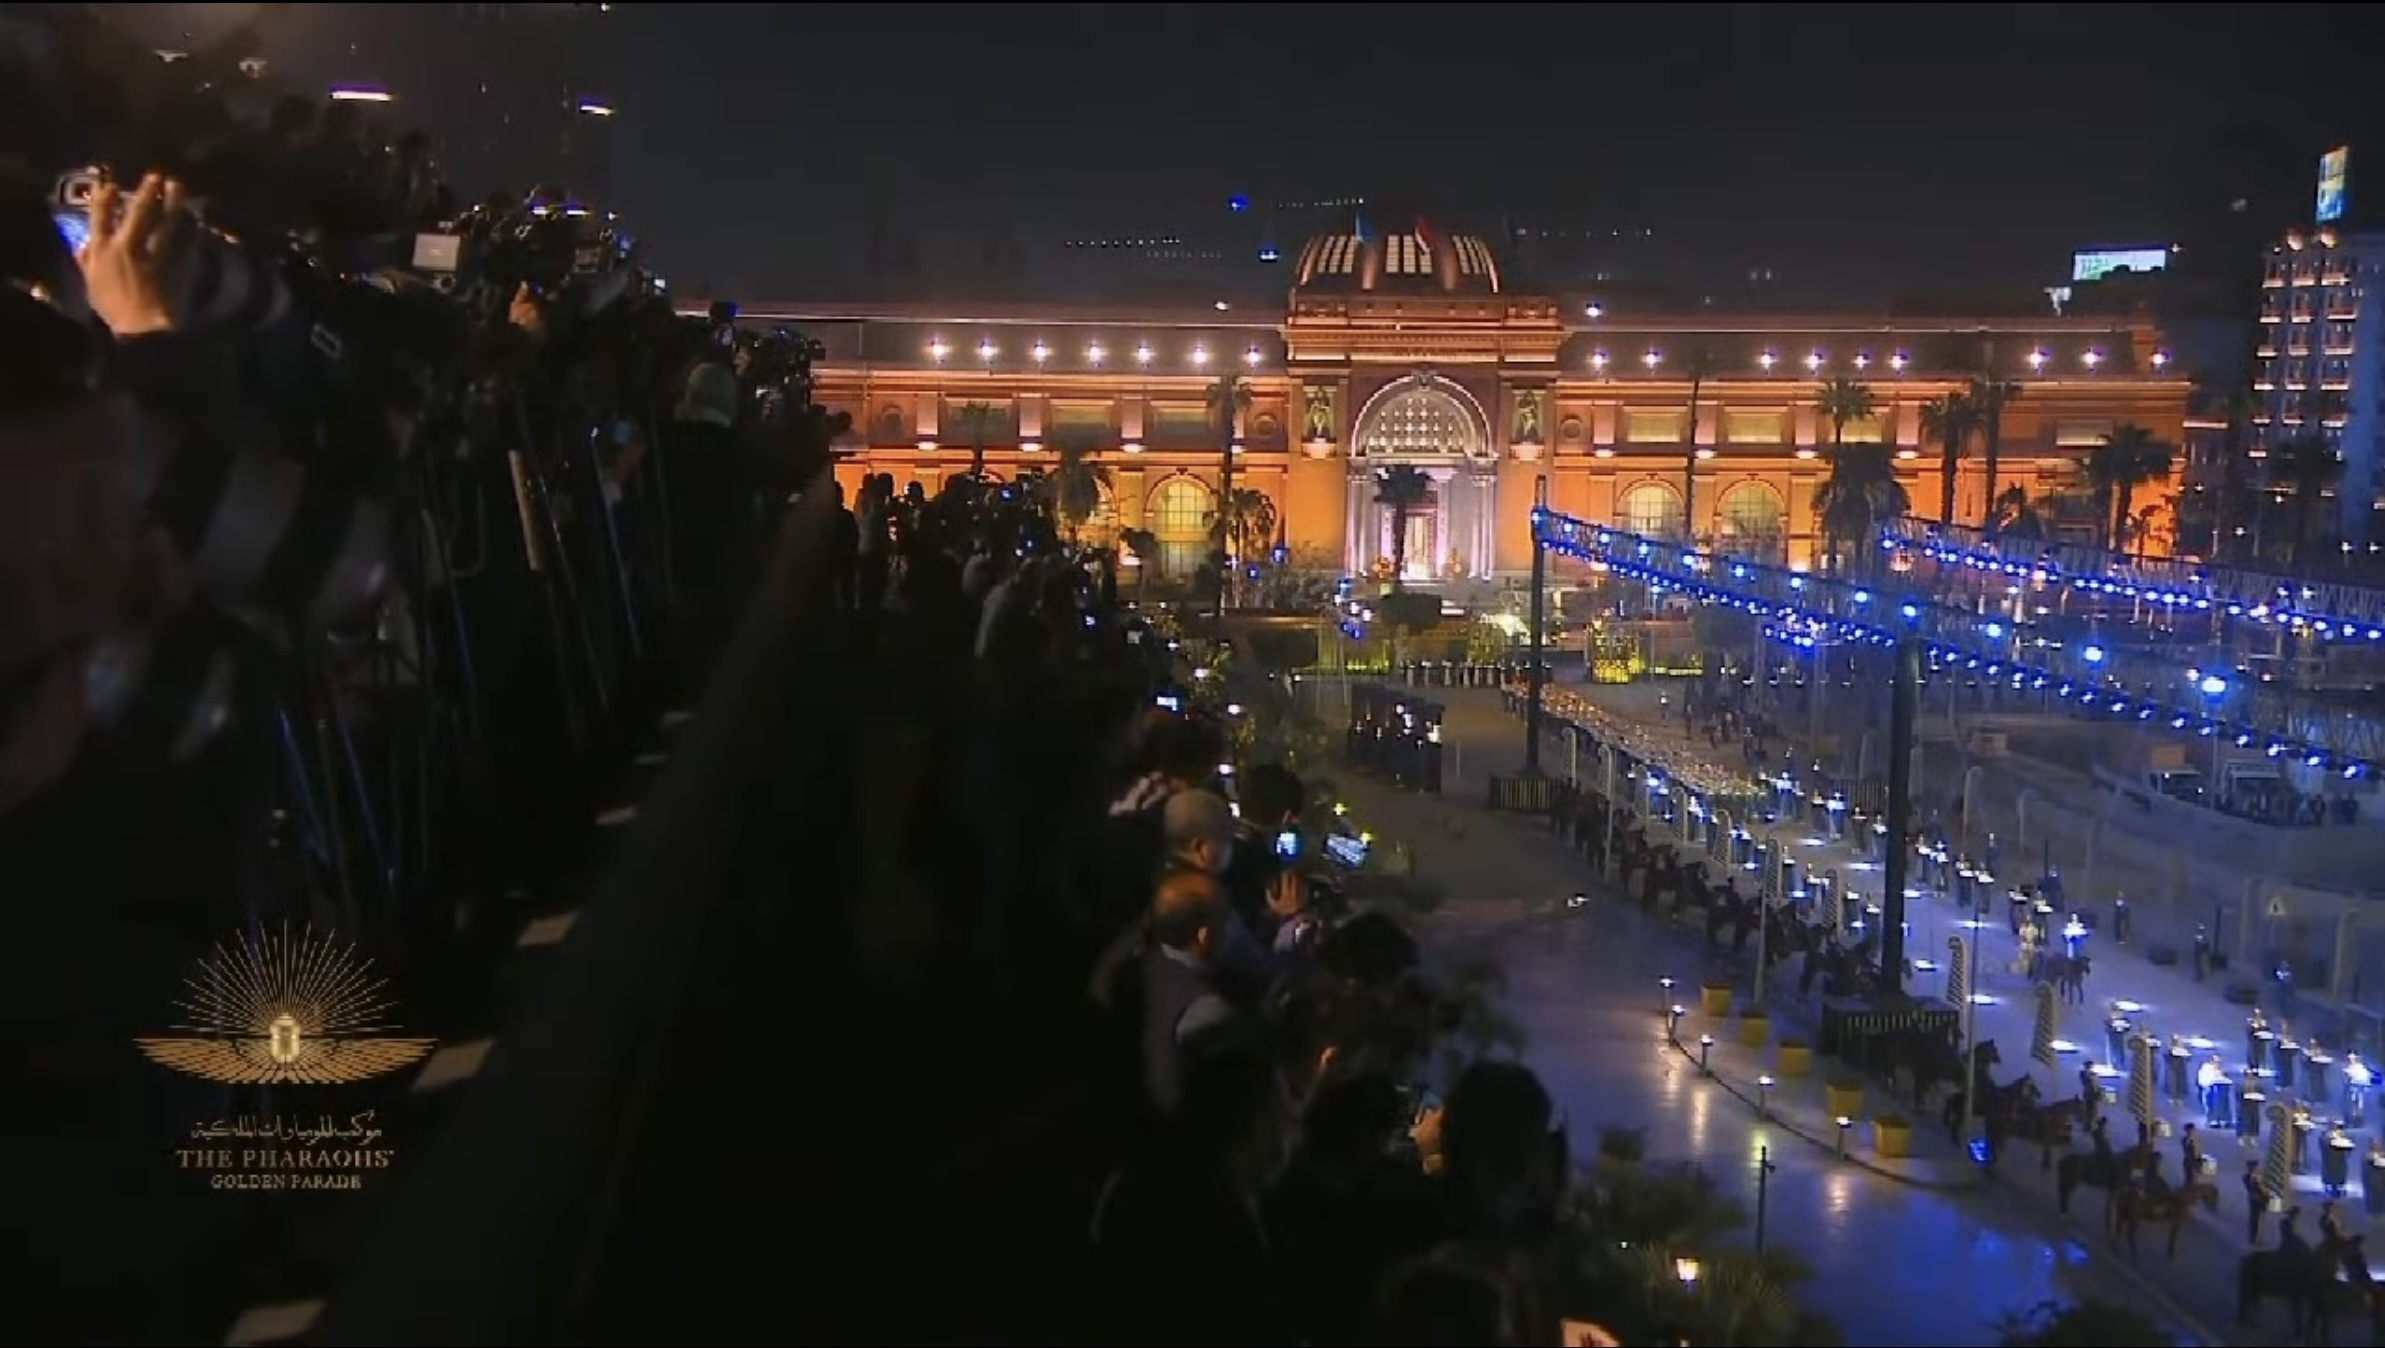 Experience Egypt's coverage of The Pharoah's Parade